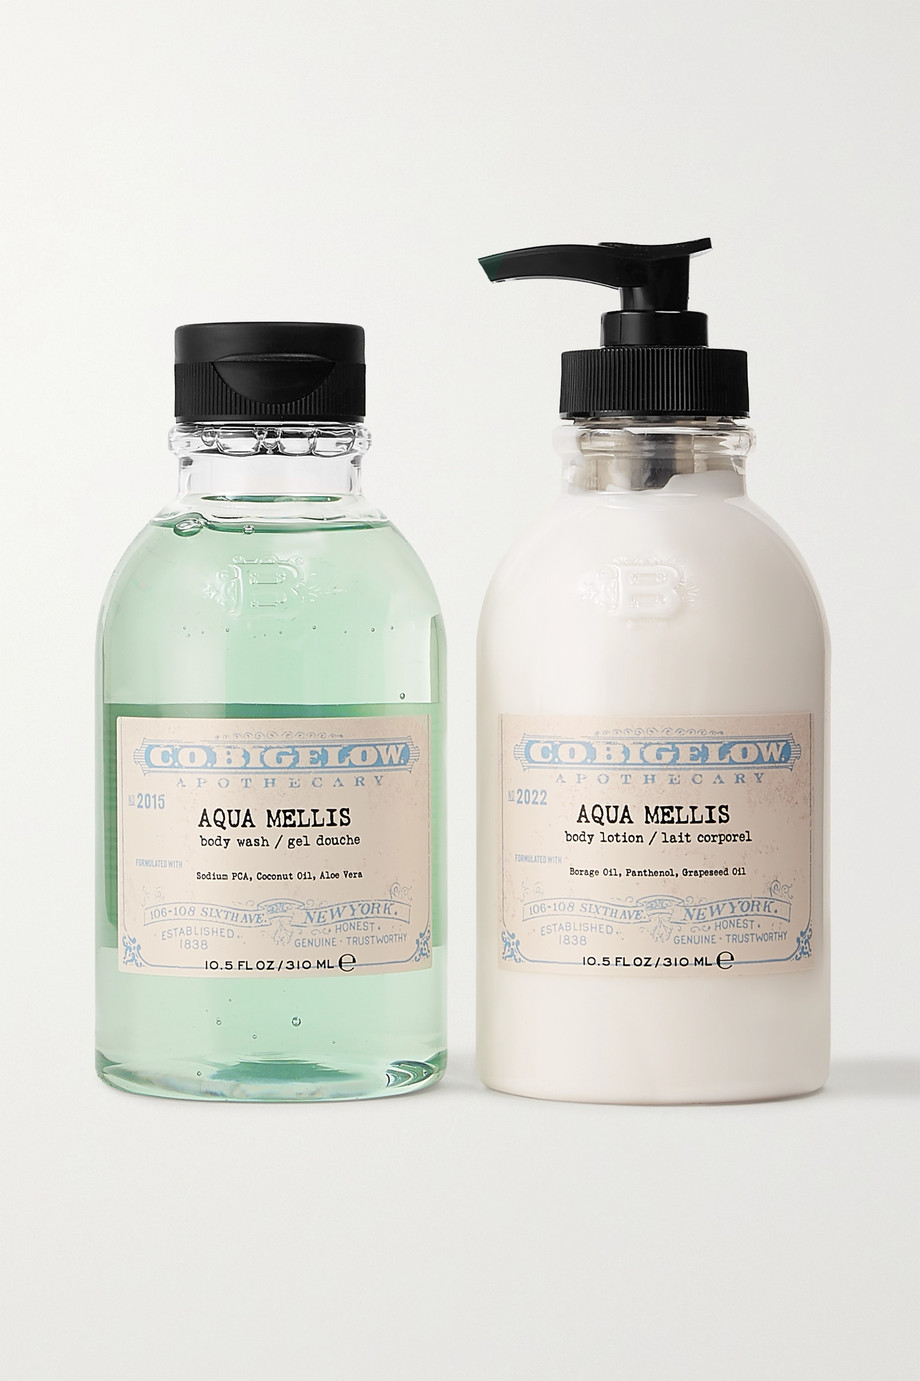 C.O. Bigelow Gel douche et lait corporel Iconic Collection, Aqua Mellis